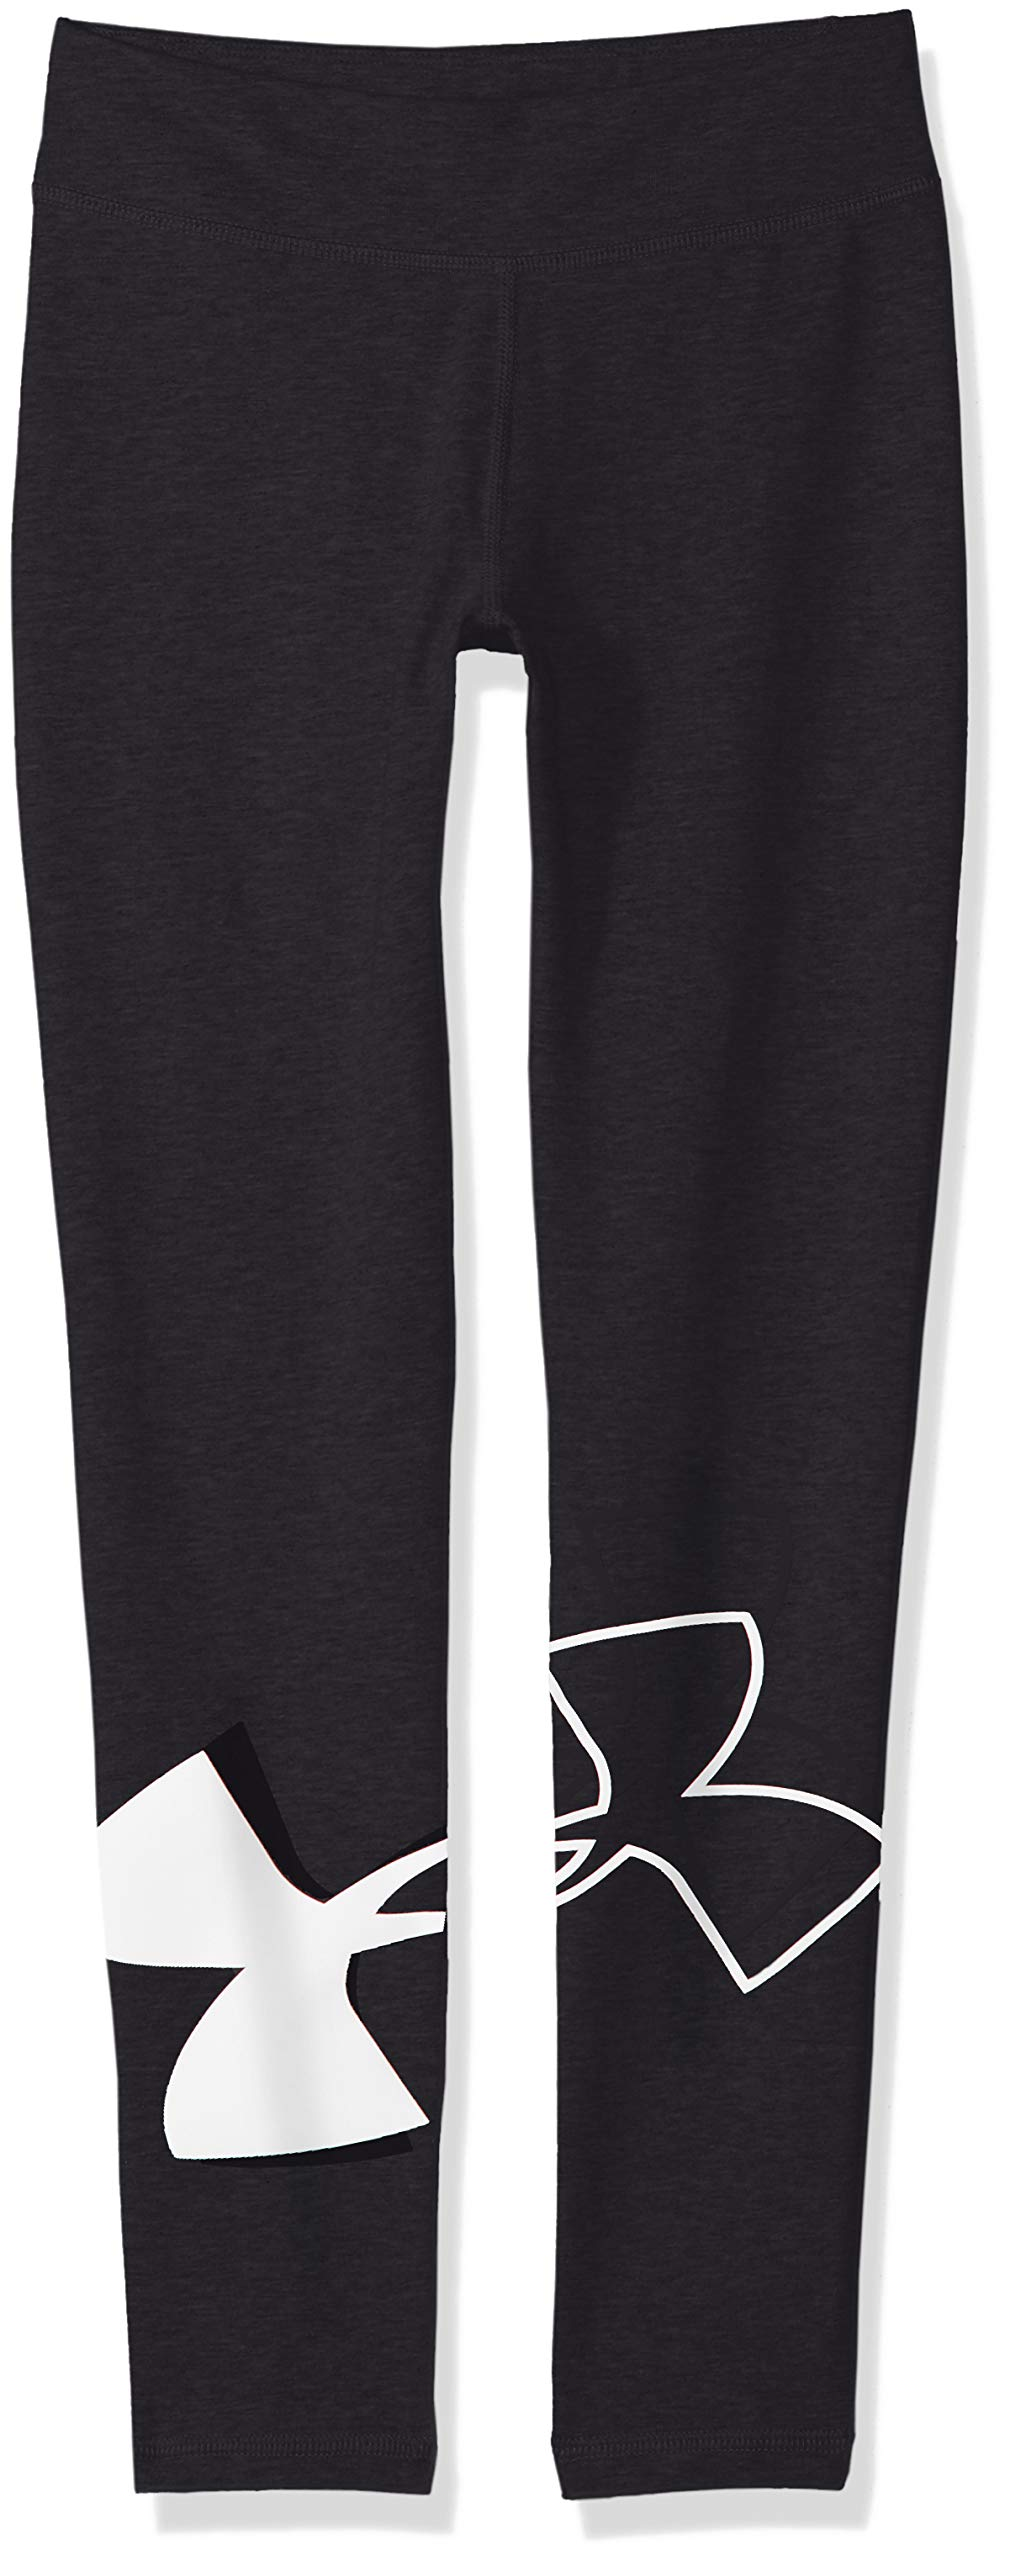 Under Armour Kids Girl's Favorite Knit Leggings (Big Kids) Black/White X-Small by Under Armour